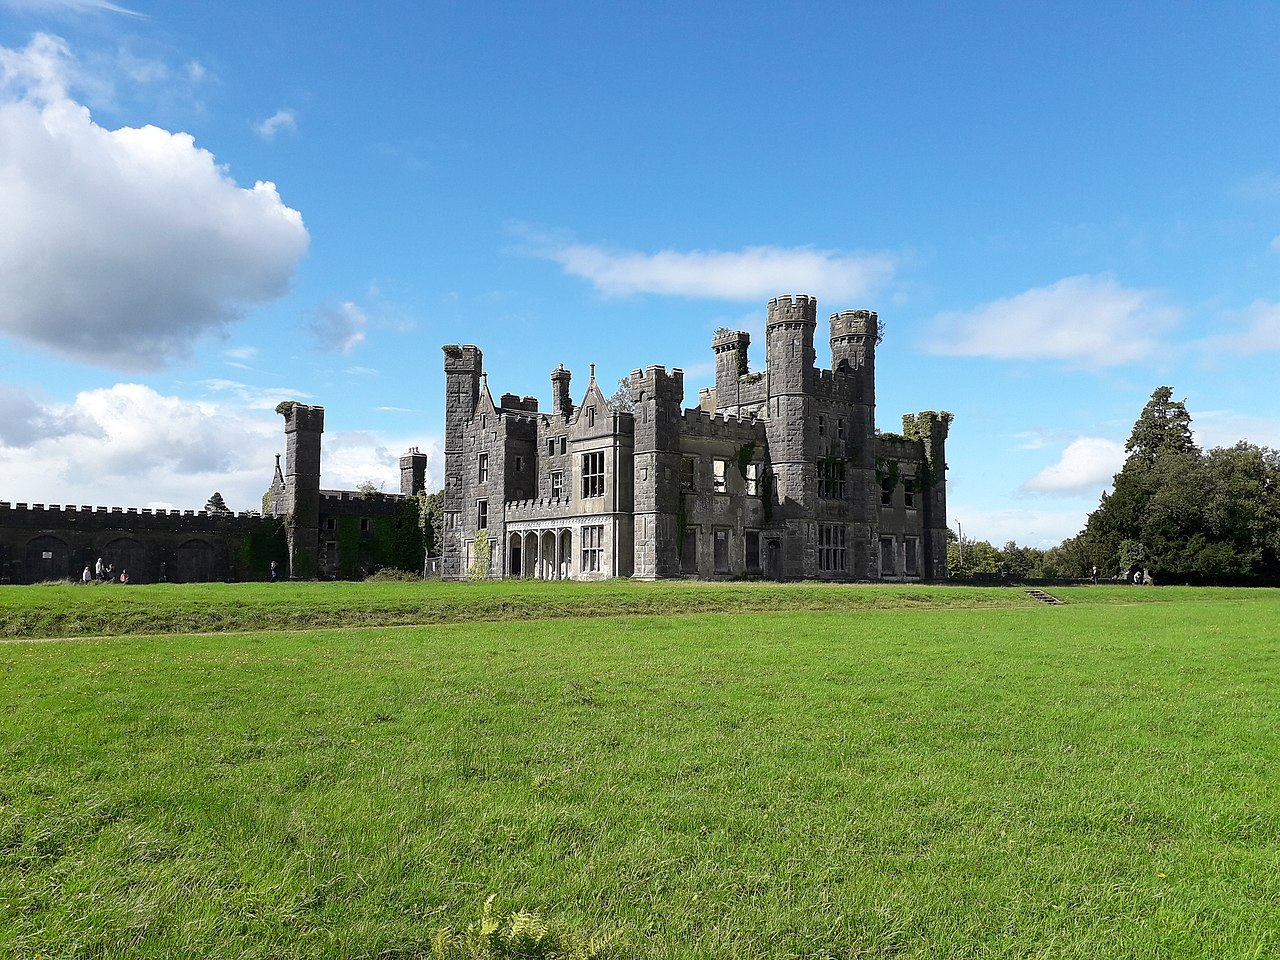 Saunderson Castle during the day